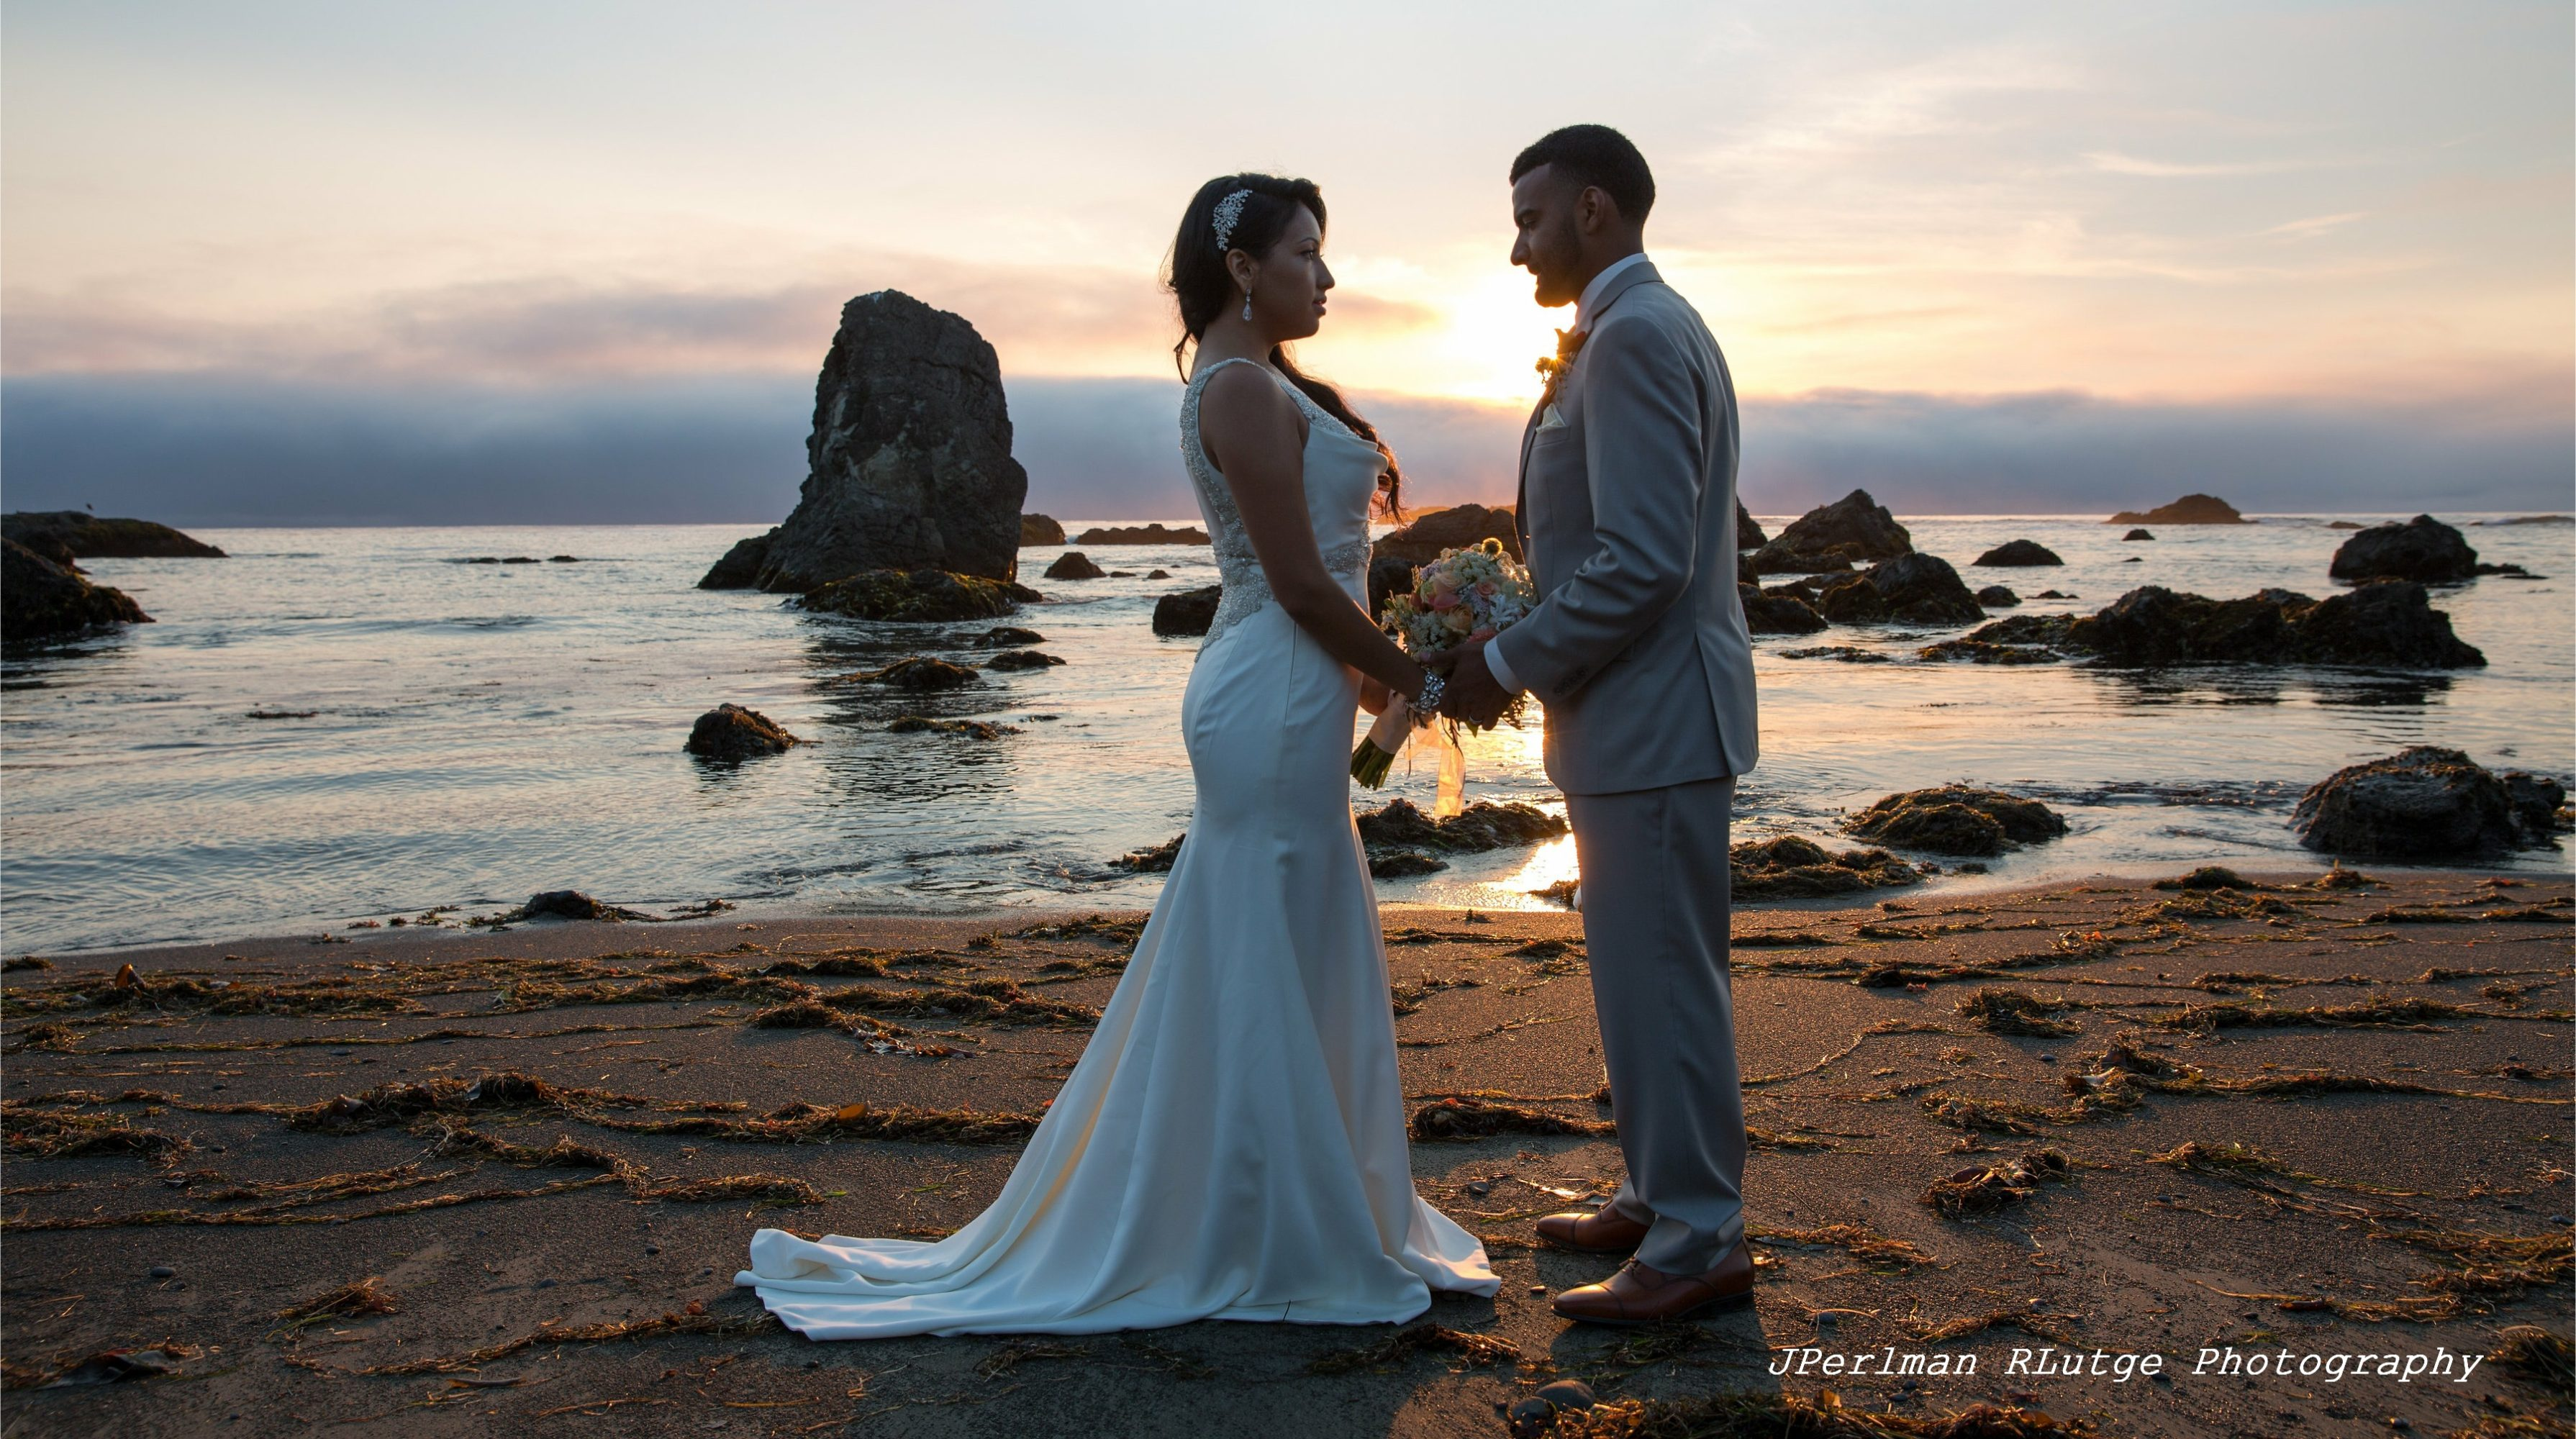 Johana and Isaac face each other, holding hands, on the beach at Westport, California, shortly after their wedding by Elope Mendocino.